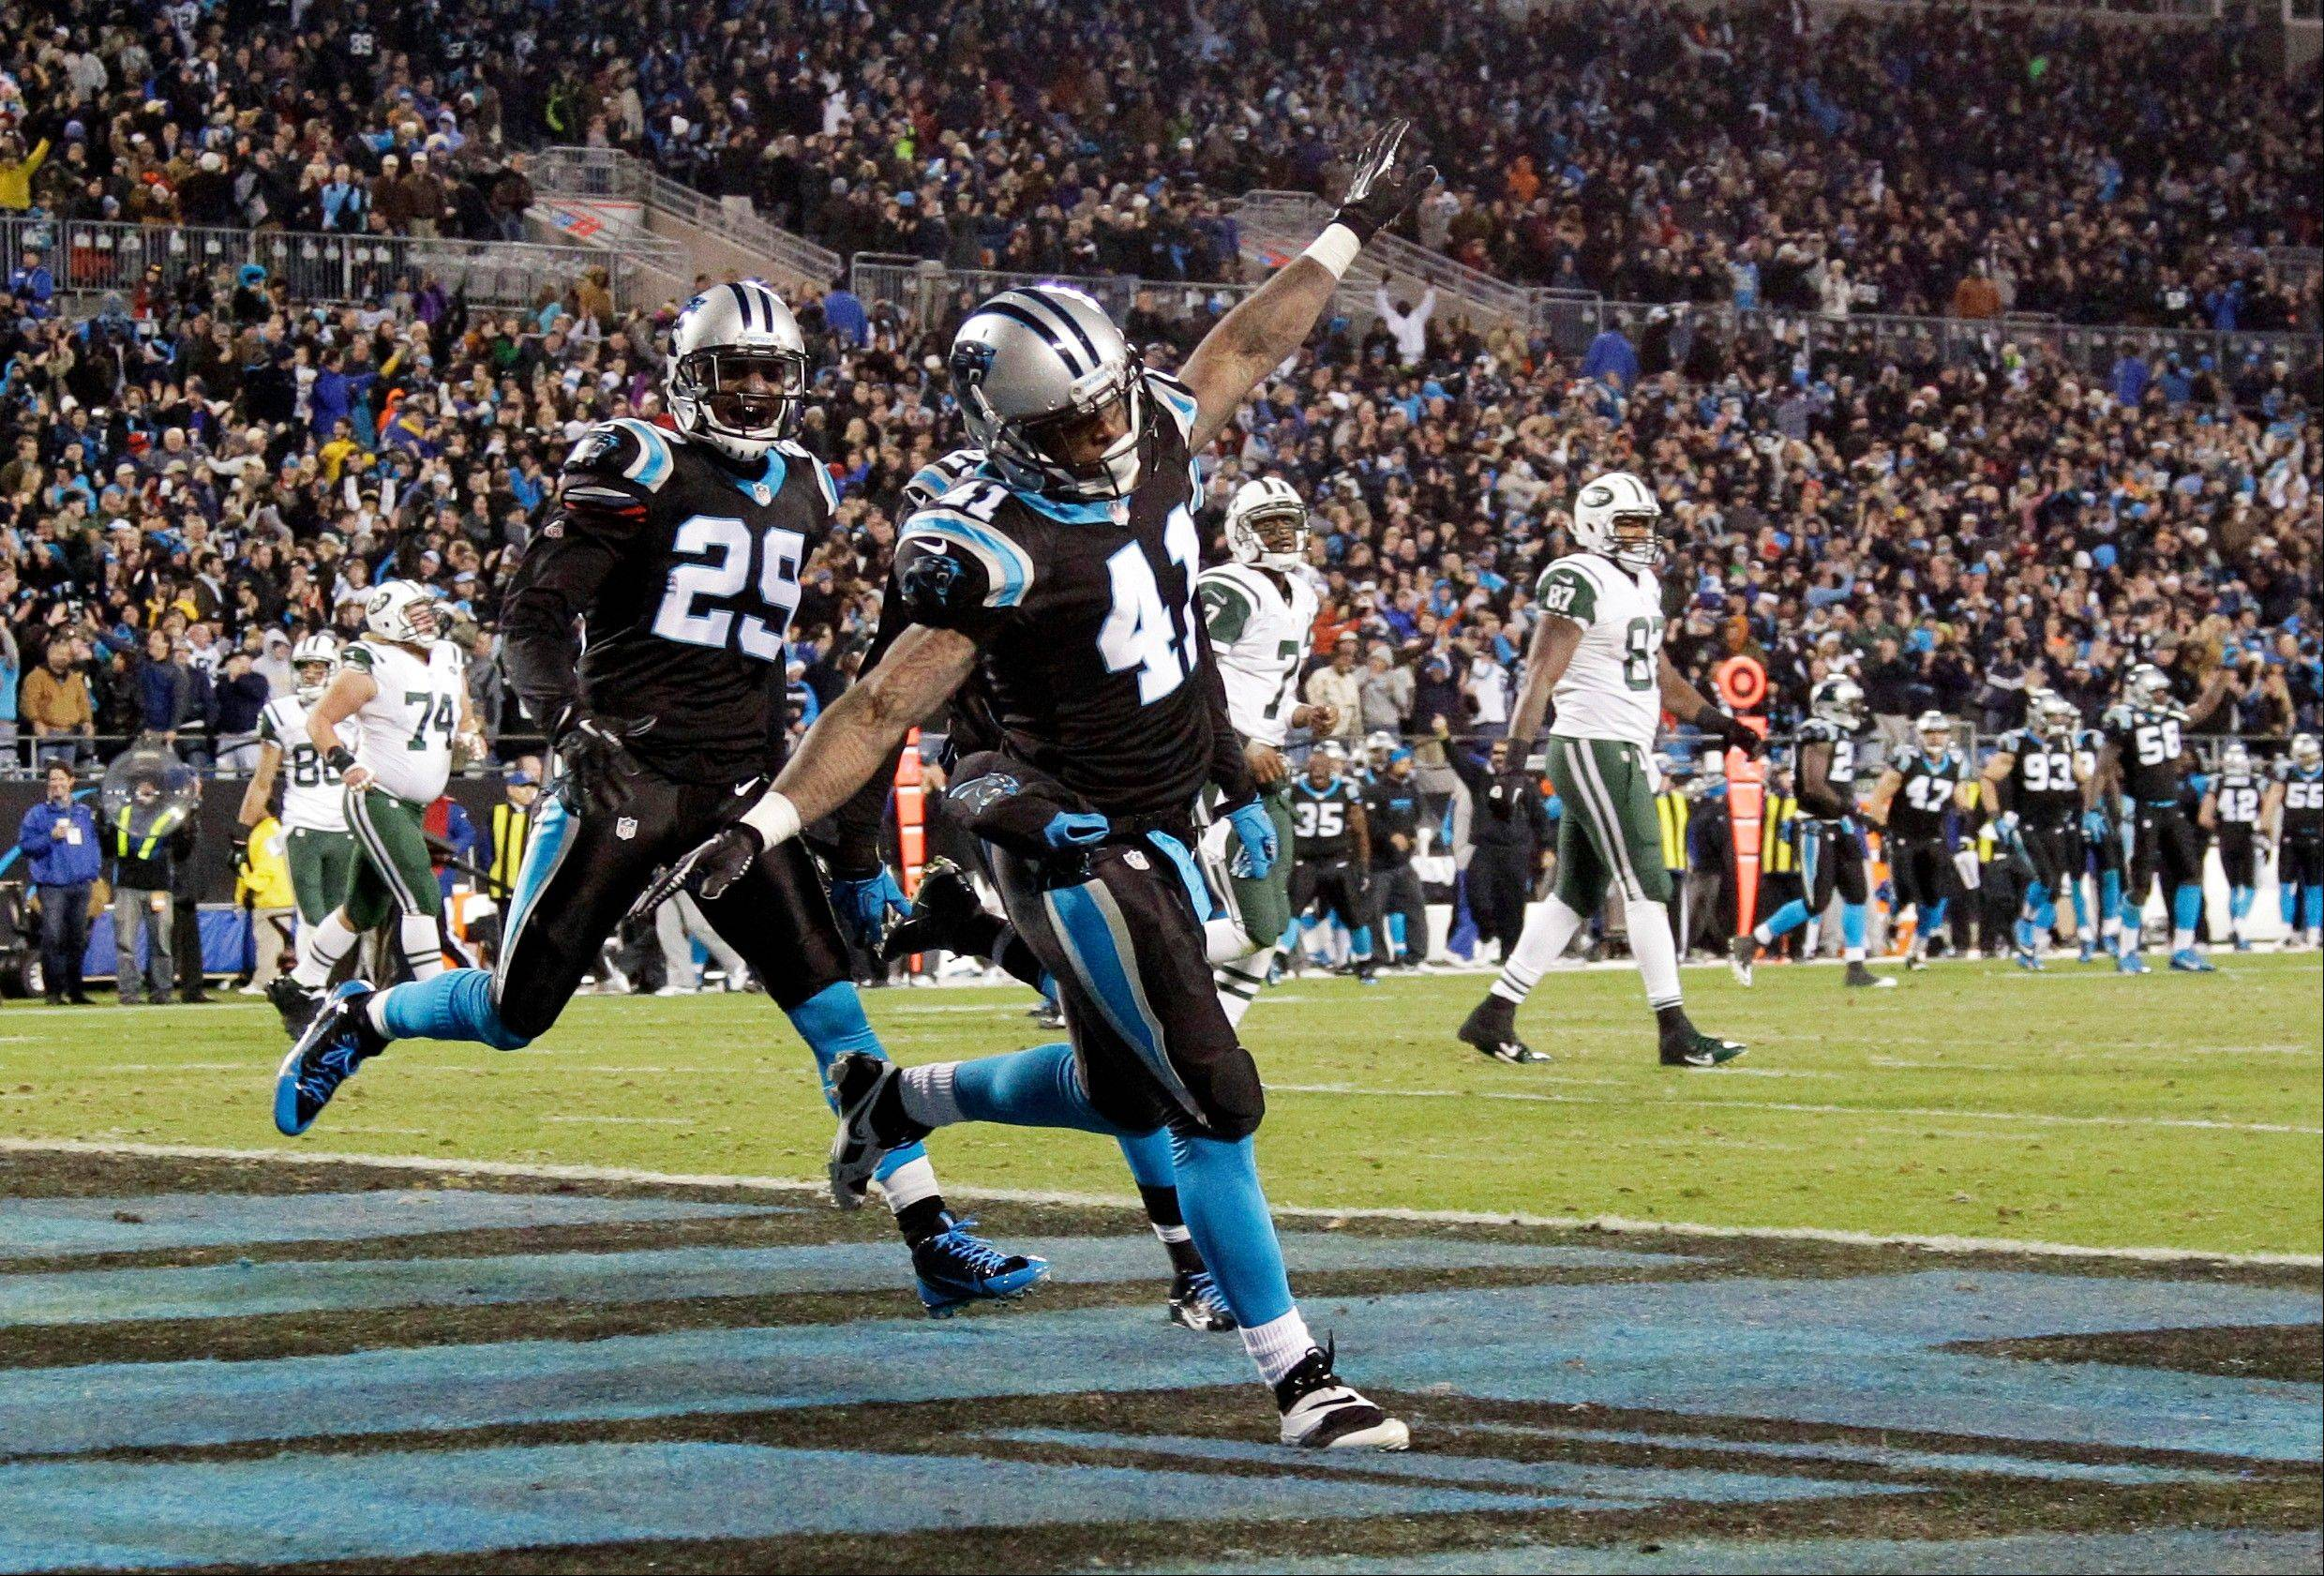 Carolina Panthers� Captain Munnerlyn (41) celebrates his interception return for a touchdown with Drayton Florence (29) during the second half of an NFL football game against the New York Jets in Charlotte, N.C., Sunday, Dec. 15, 2013.